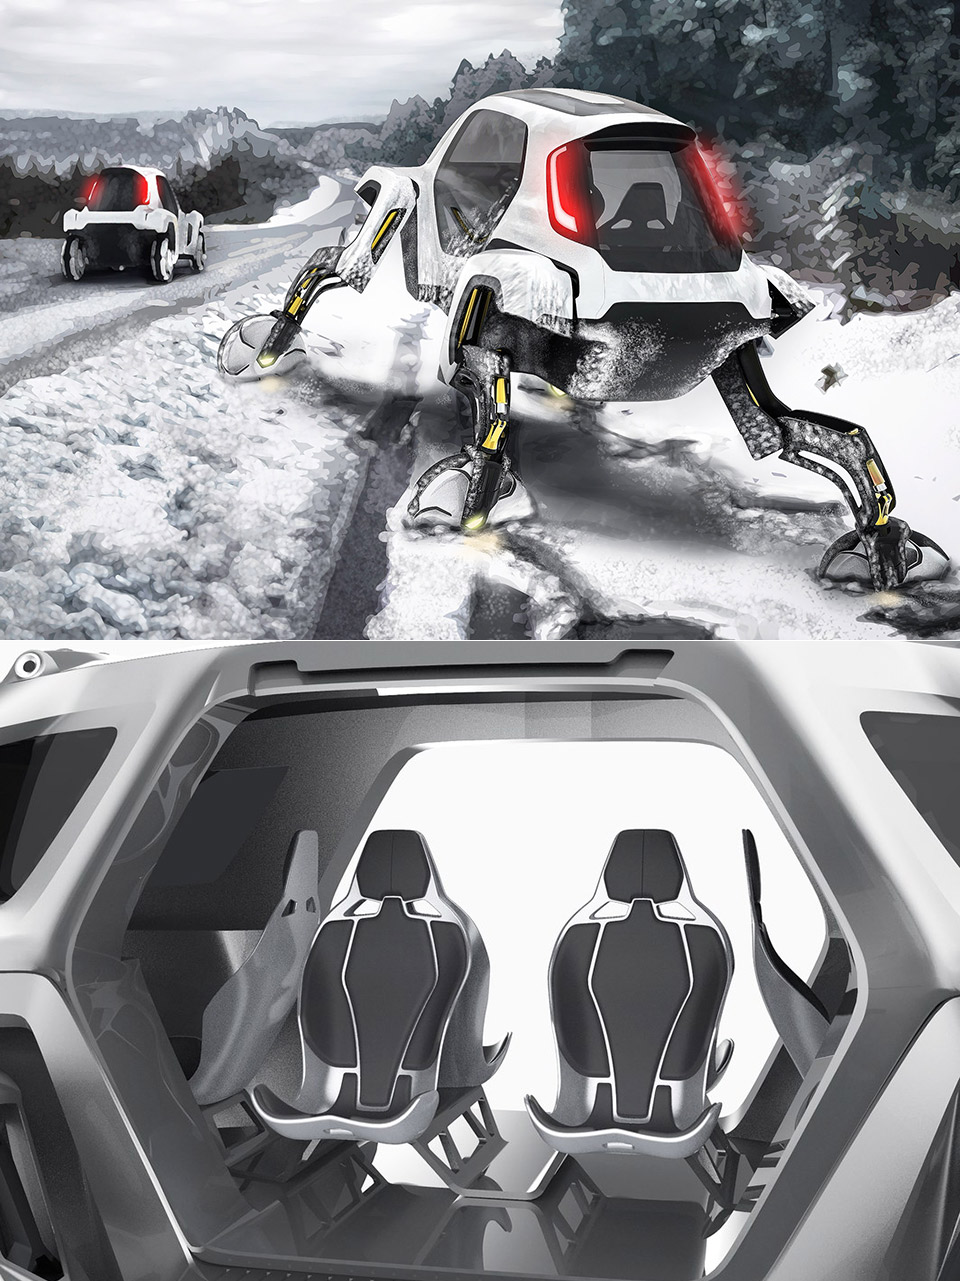 hyundai-elevate-ultimate-mobility-vehicle-interior